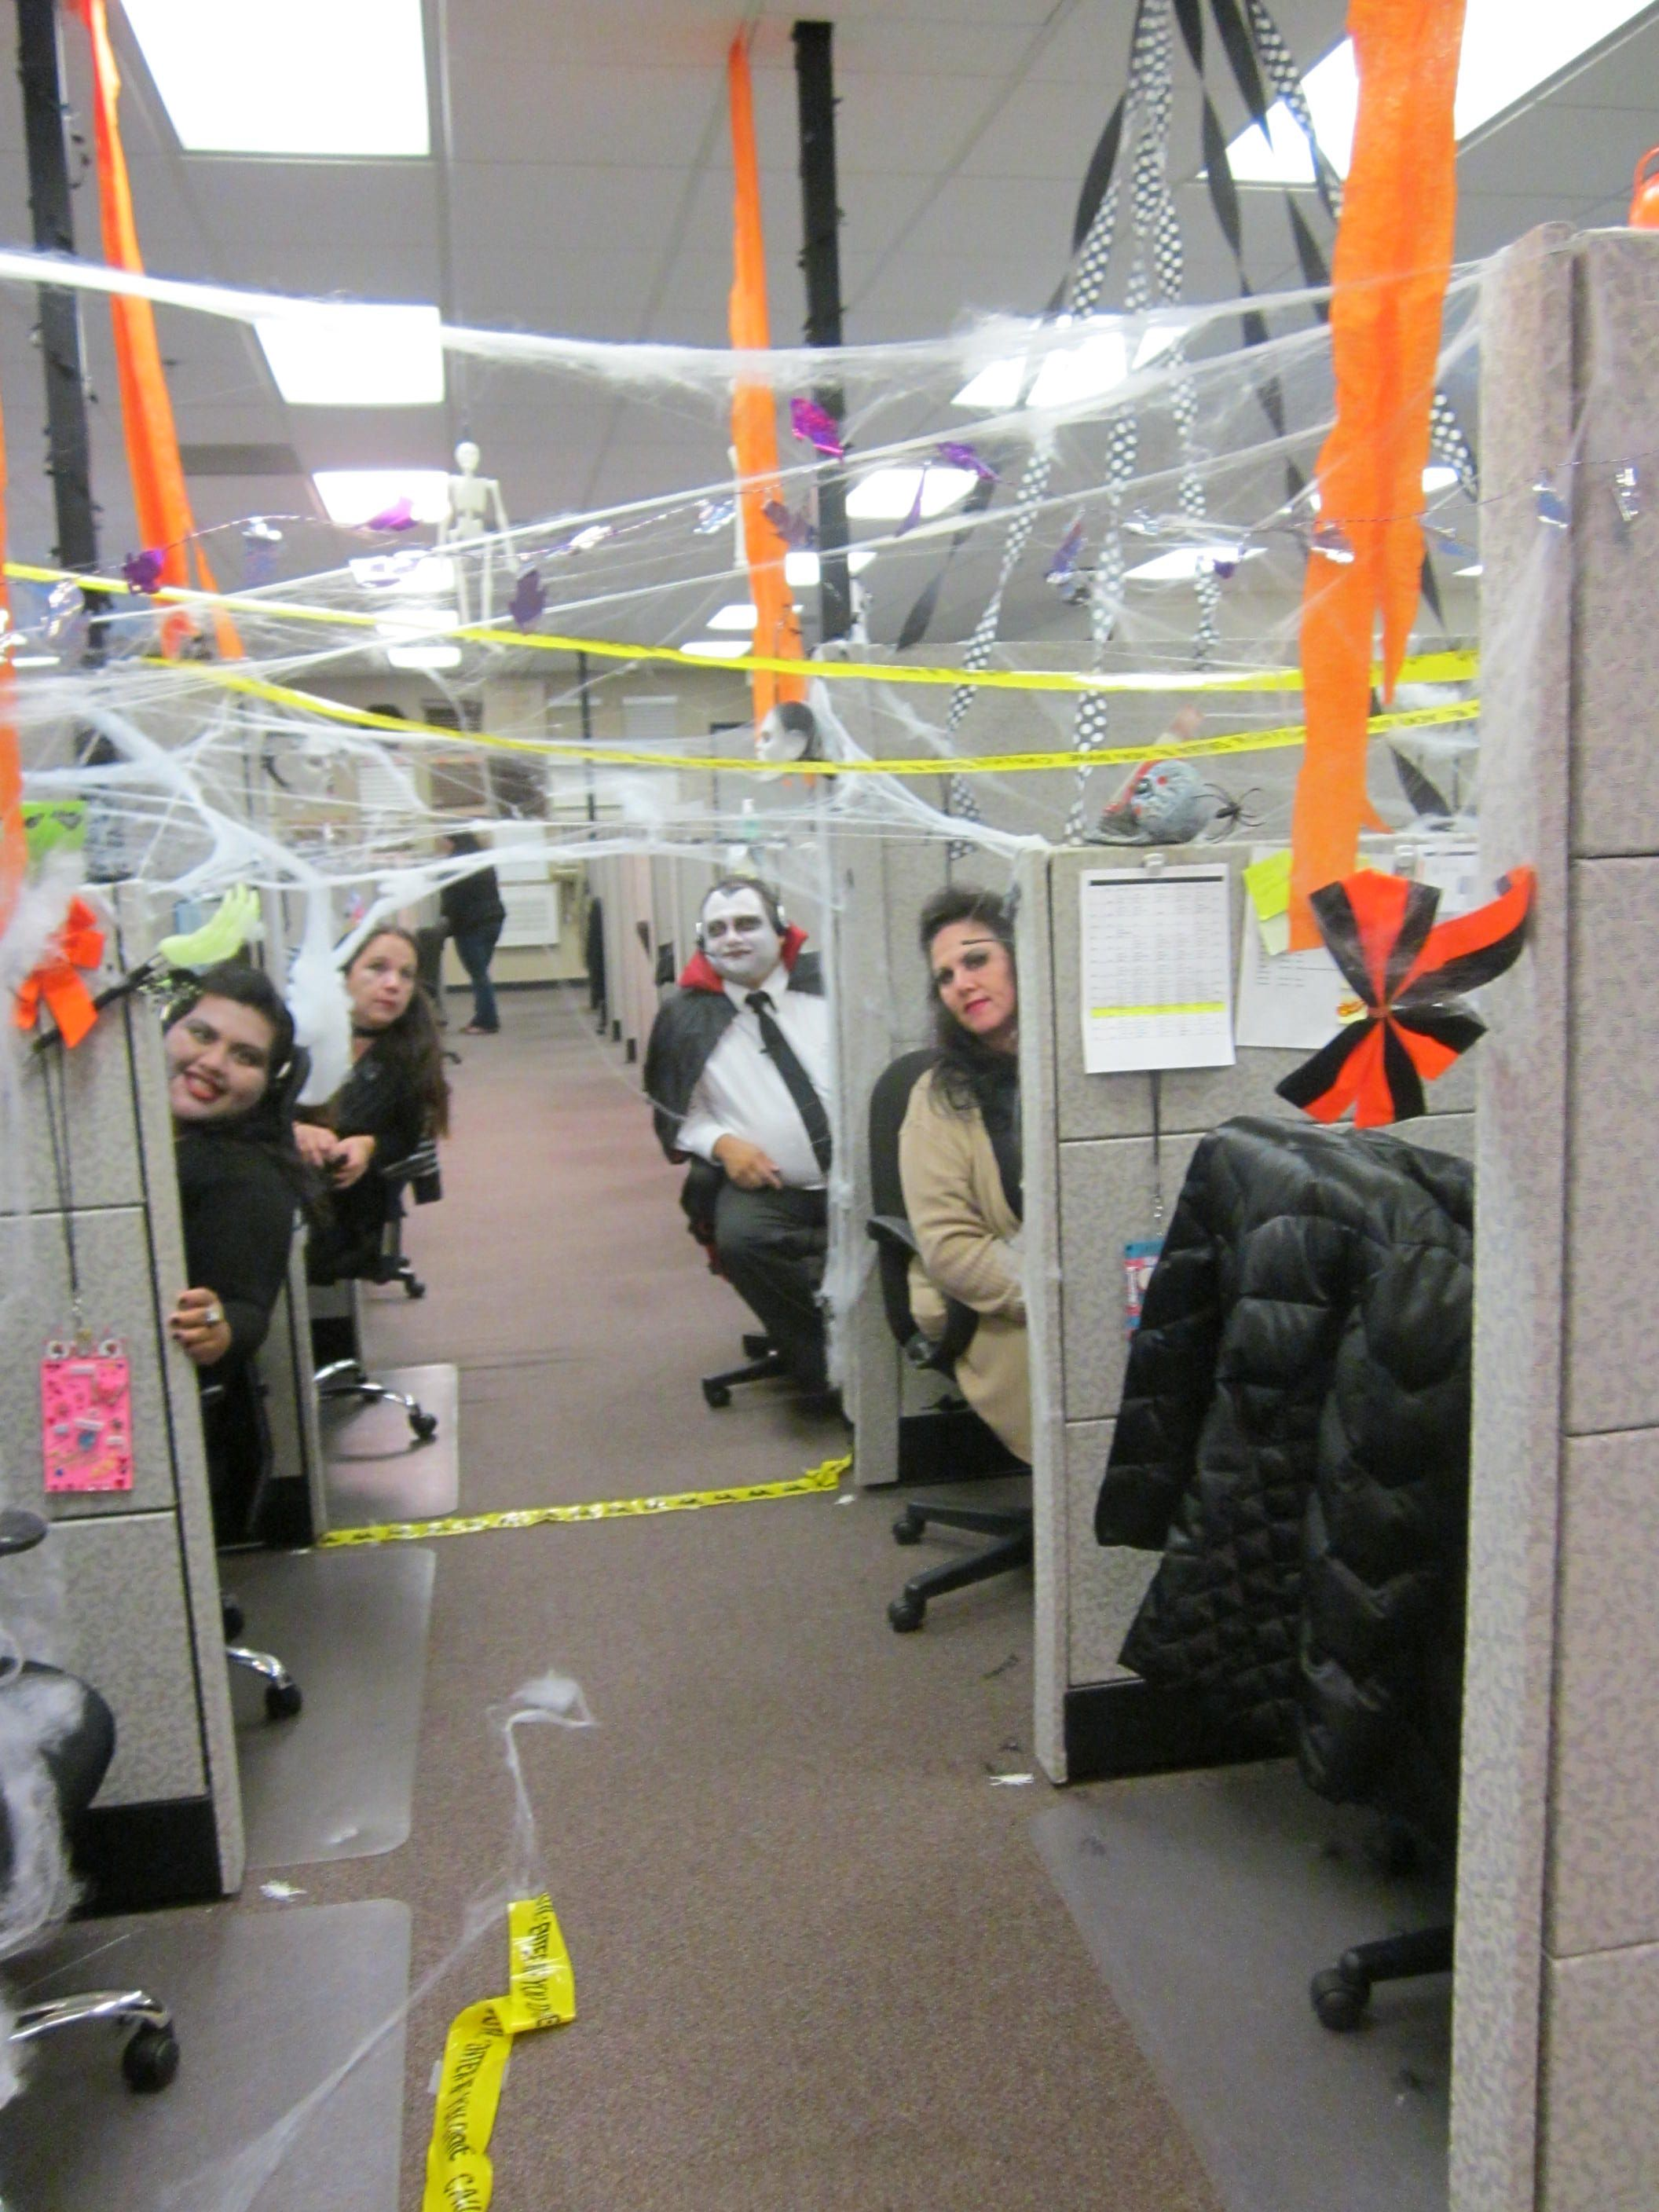 Decorating Office Cubicle -   wwwrebeccacobernet/7082 - Halloween Office Decorations Ideas